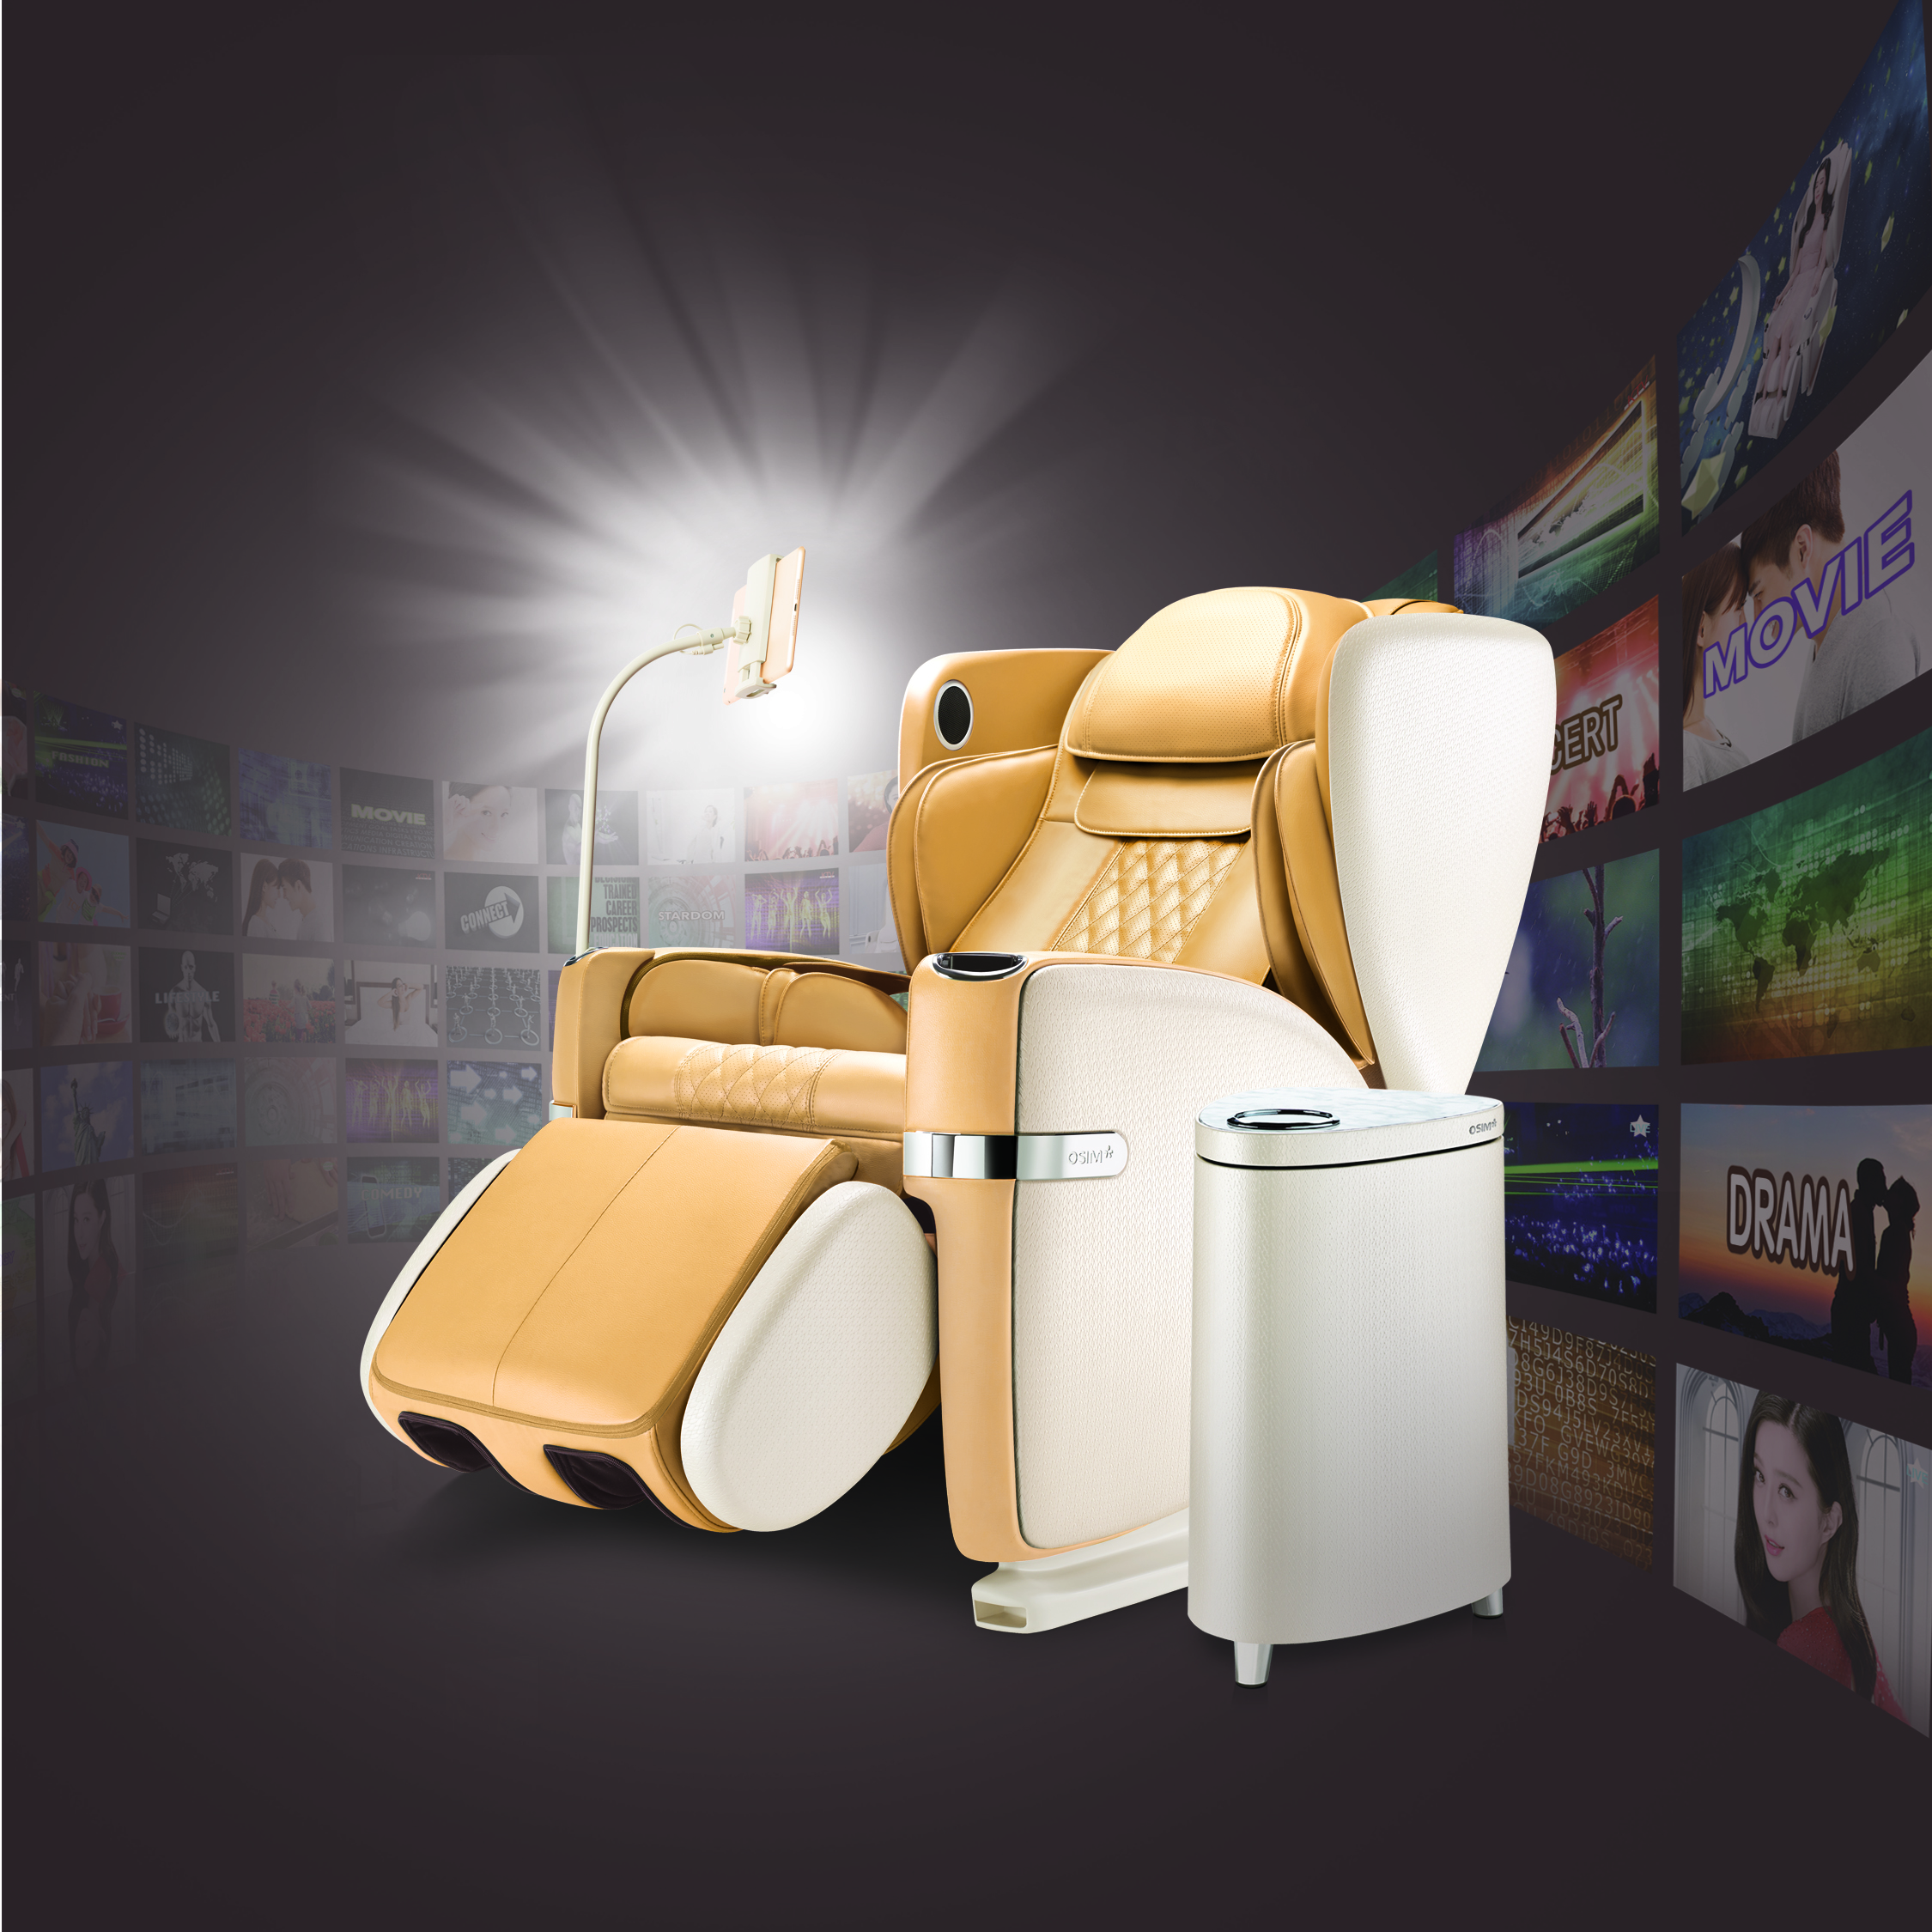 OSIM Celebrates 38th Anniversary With OSIM Limited Edition Gold Colour uLove Massage Chair